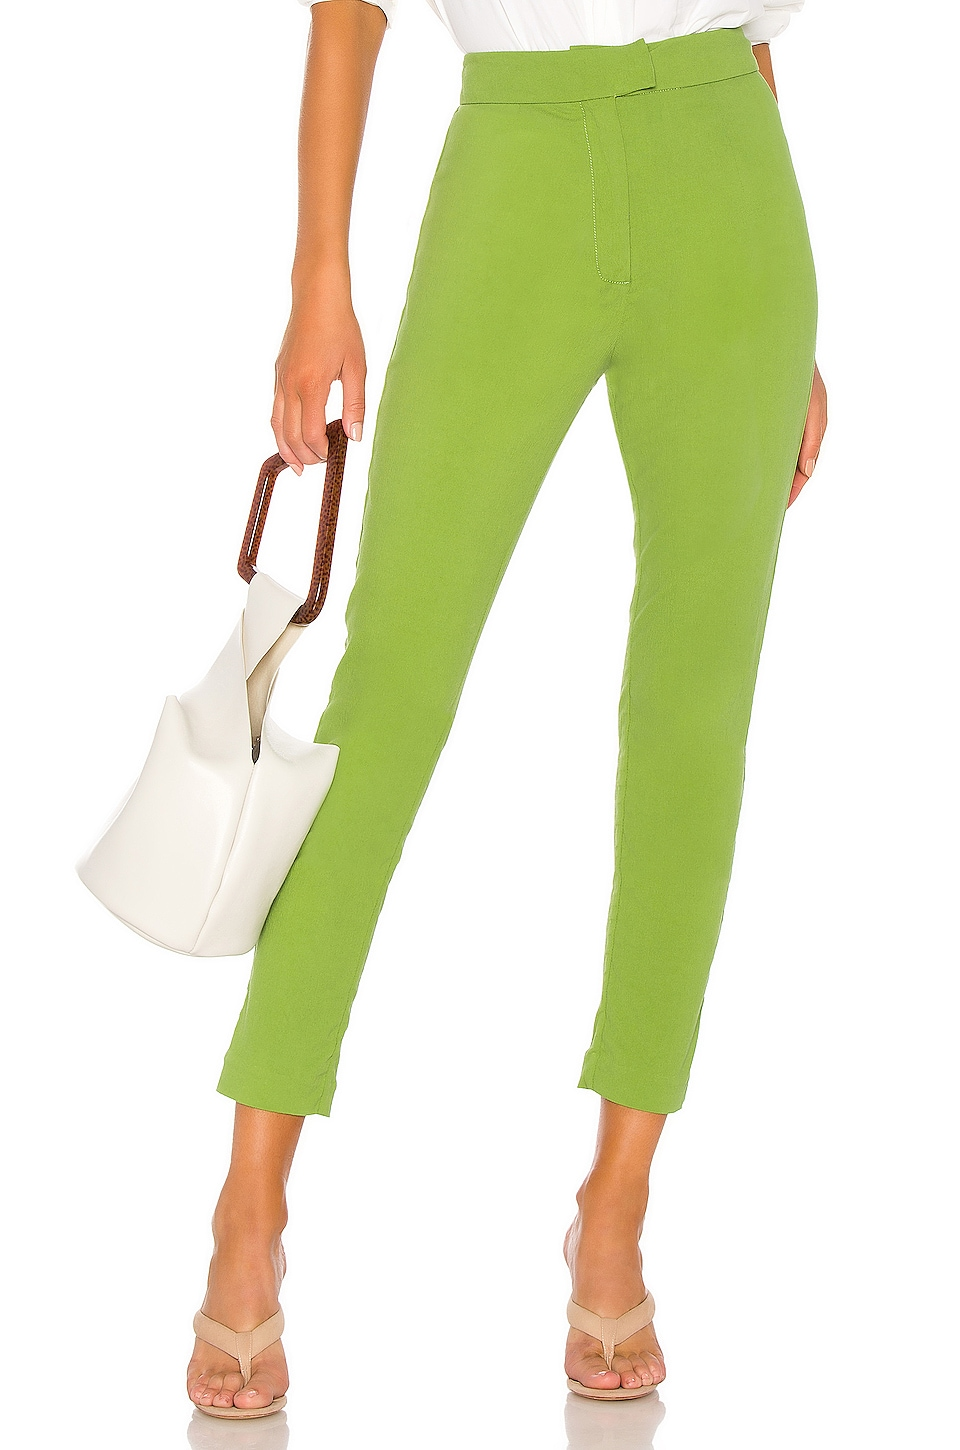 L'Academie The Valeria Pant in Moss